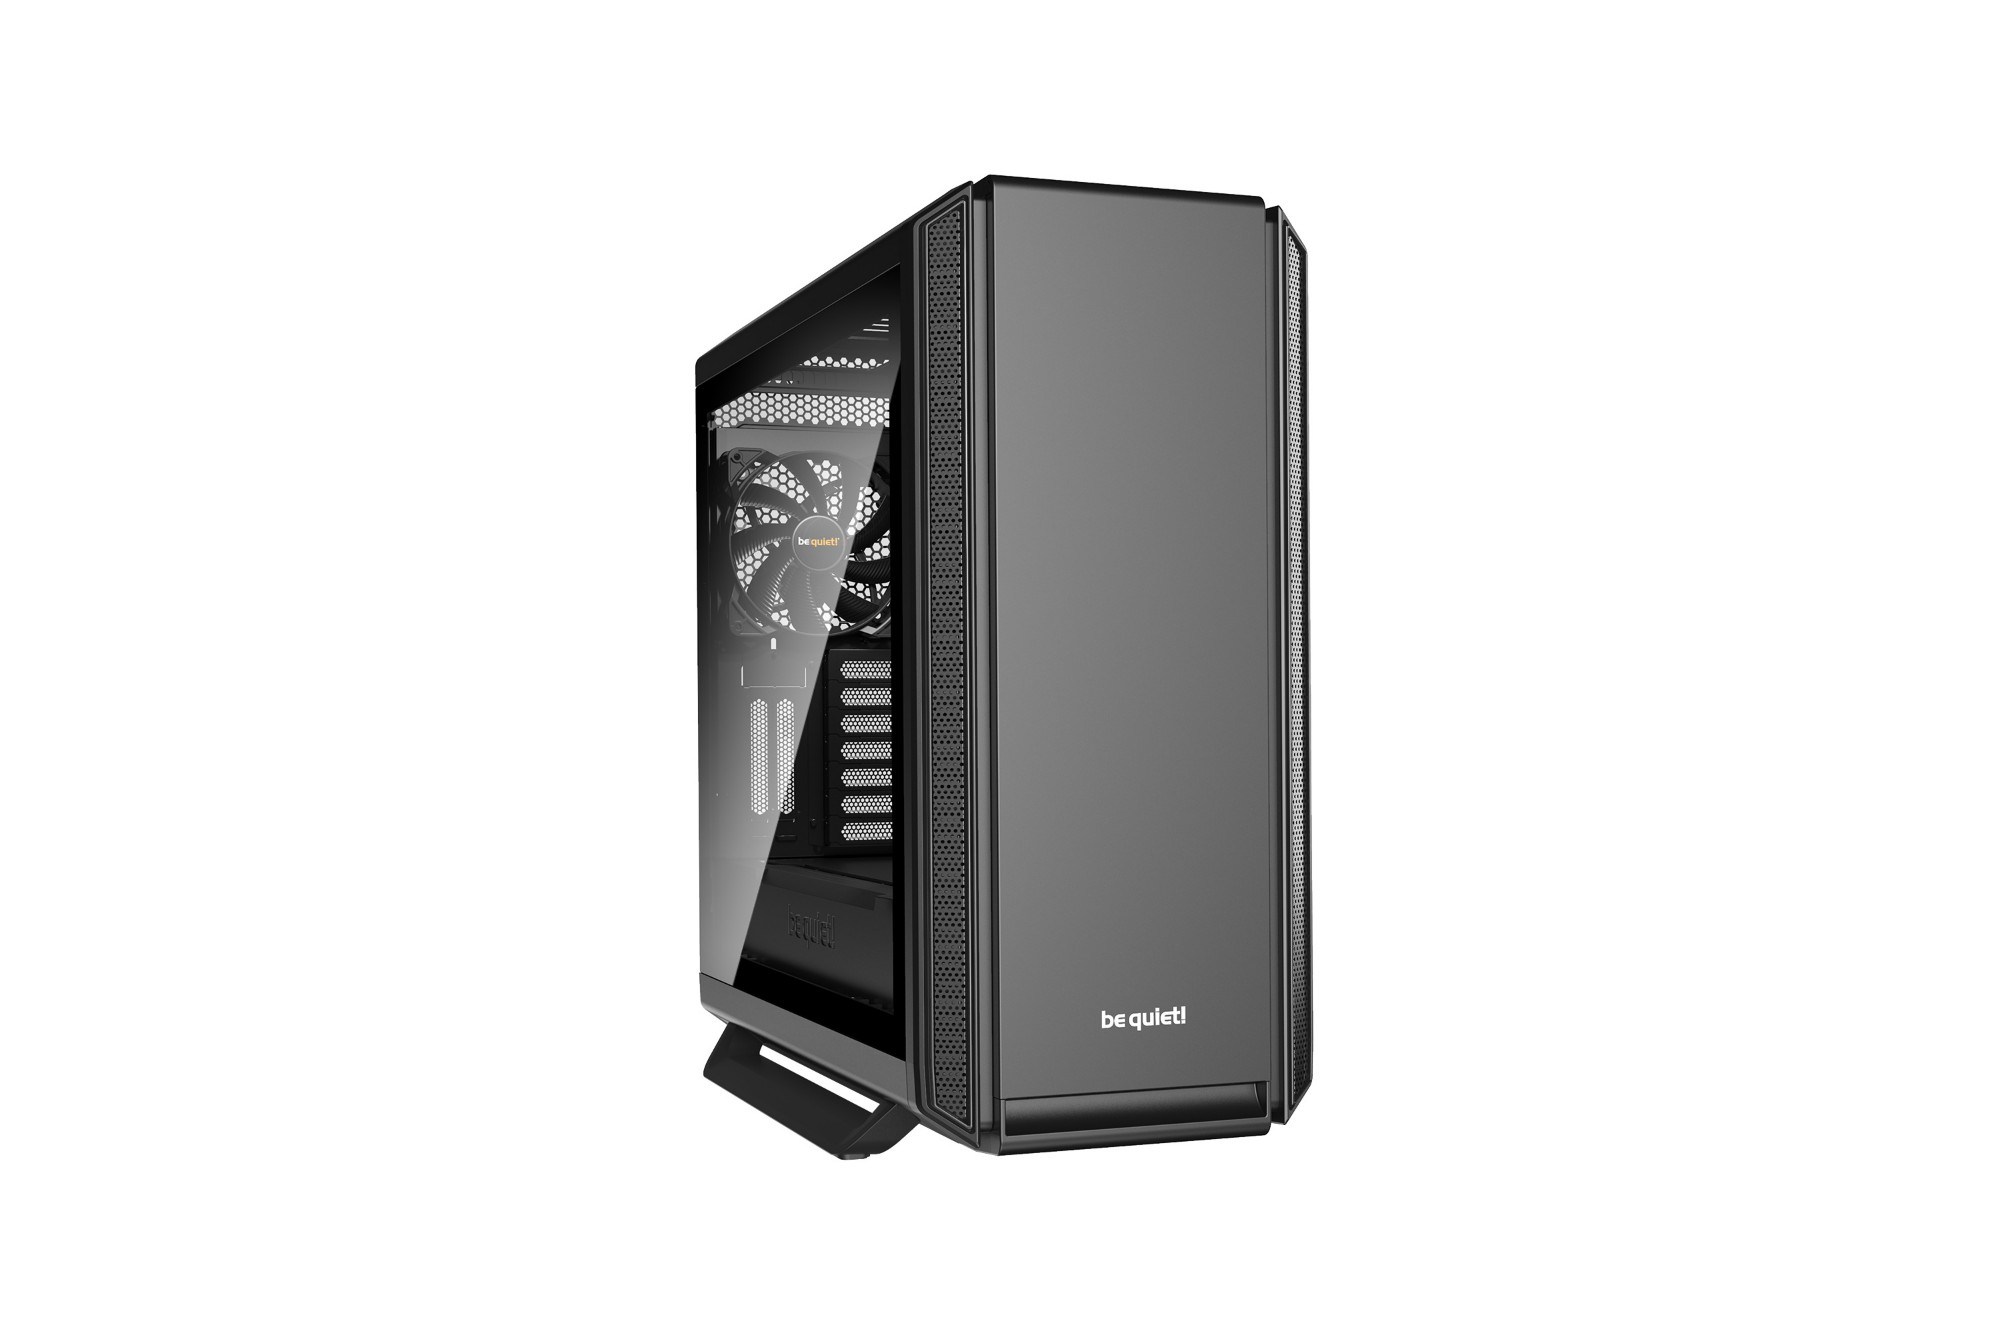 BE QUIET! BGW29 SILENT BASE 801 WINDOW COMPUTER CASE MIDI-TOWER BLACK